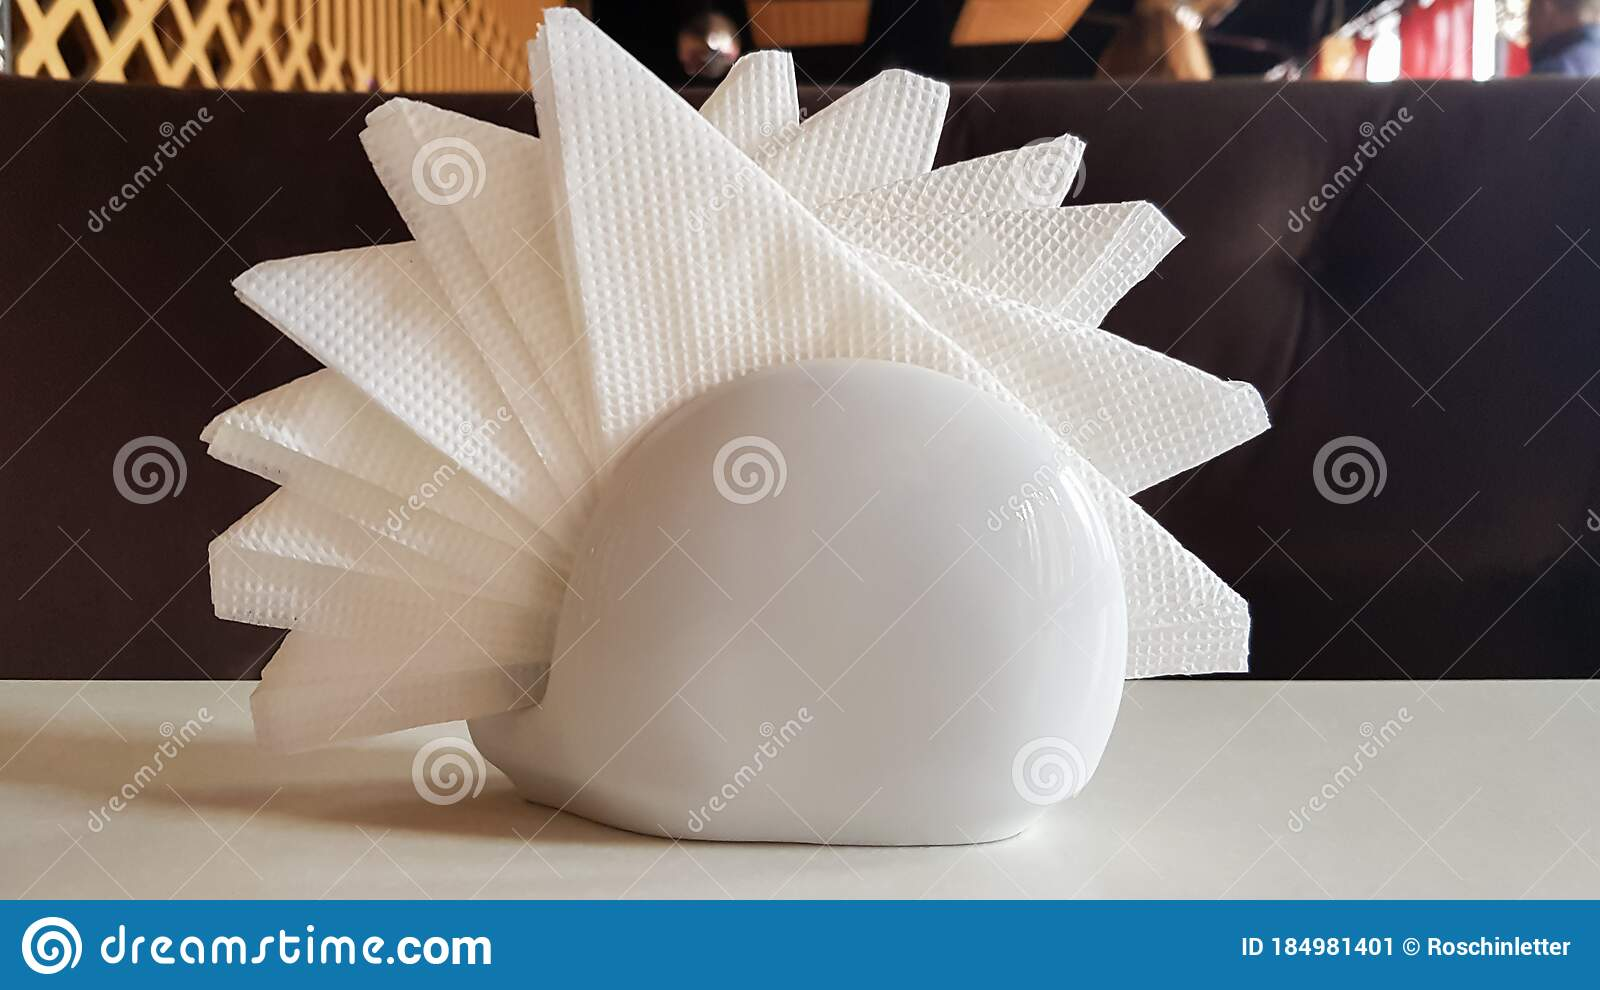 A Table In A Cafe And Restaurant White Napkins In A Ceramic Napkin Holder Hotel Dining Table With Napkins A Paper Napkin Is Stock Image Image Of Porcelain Decor 184981401